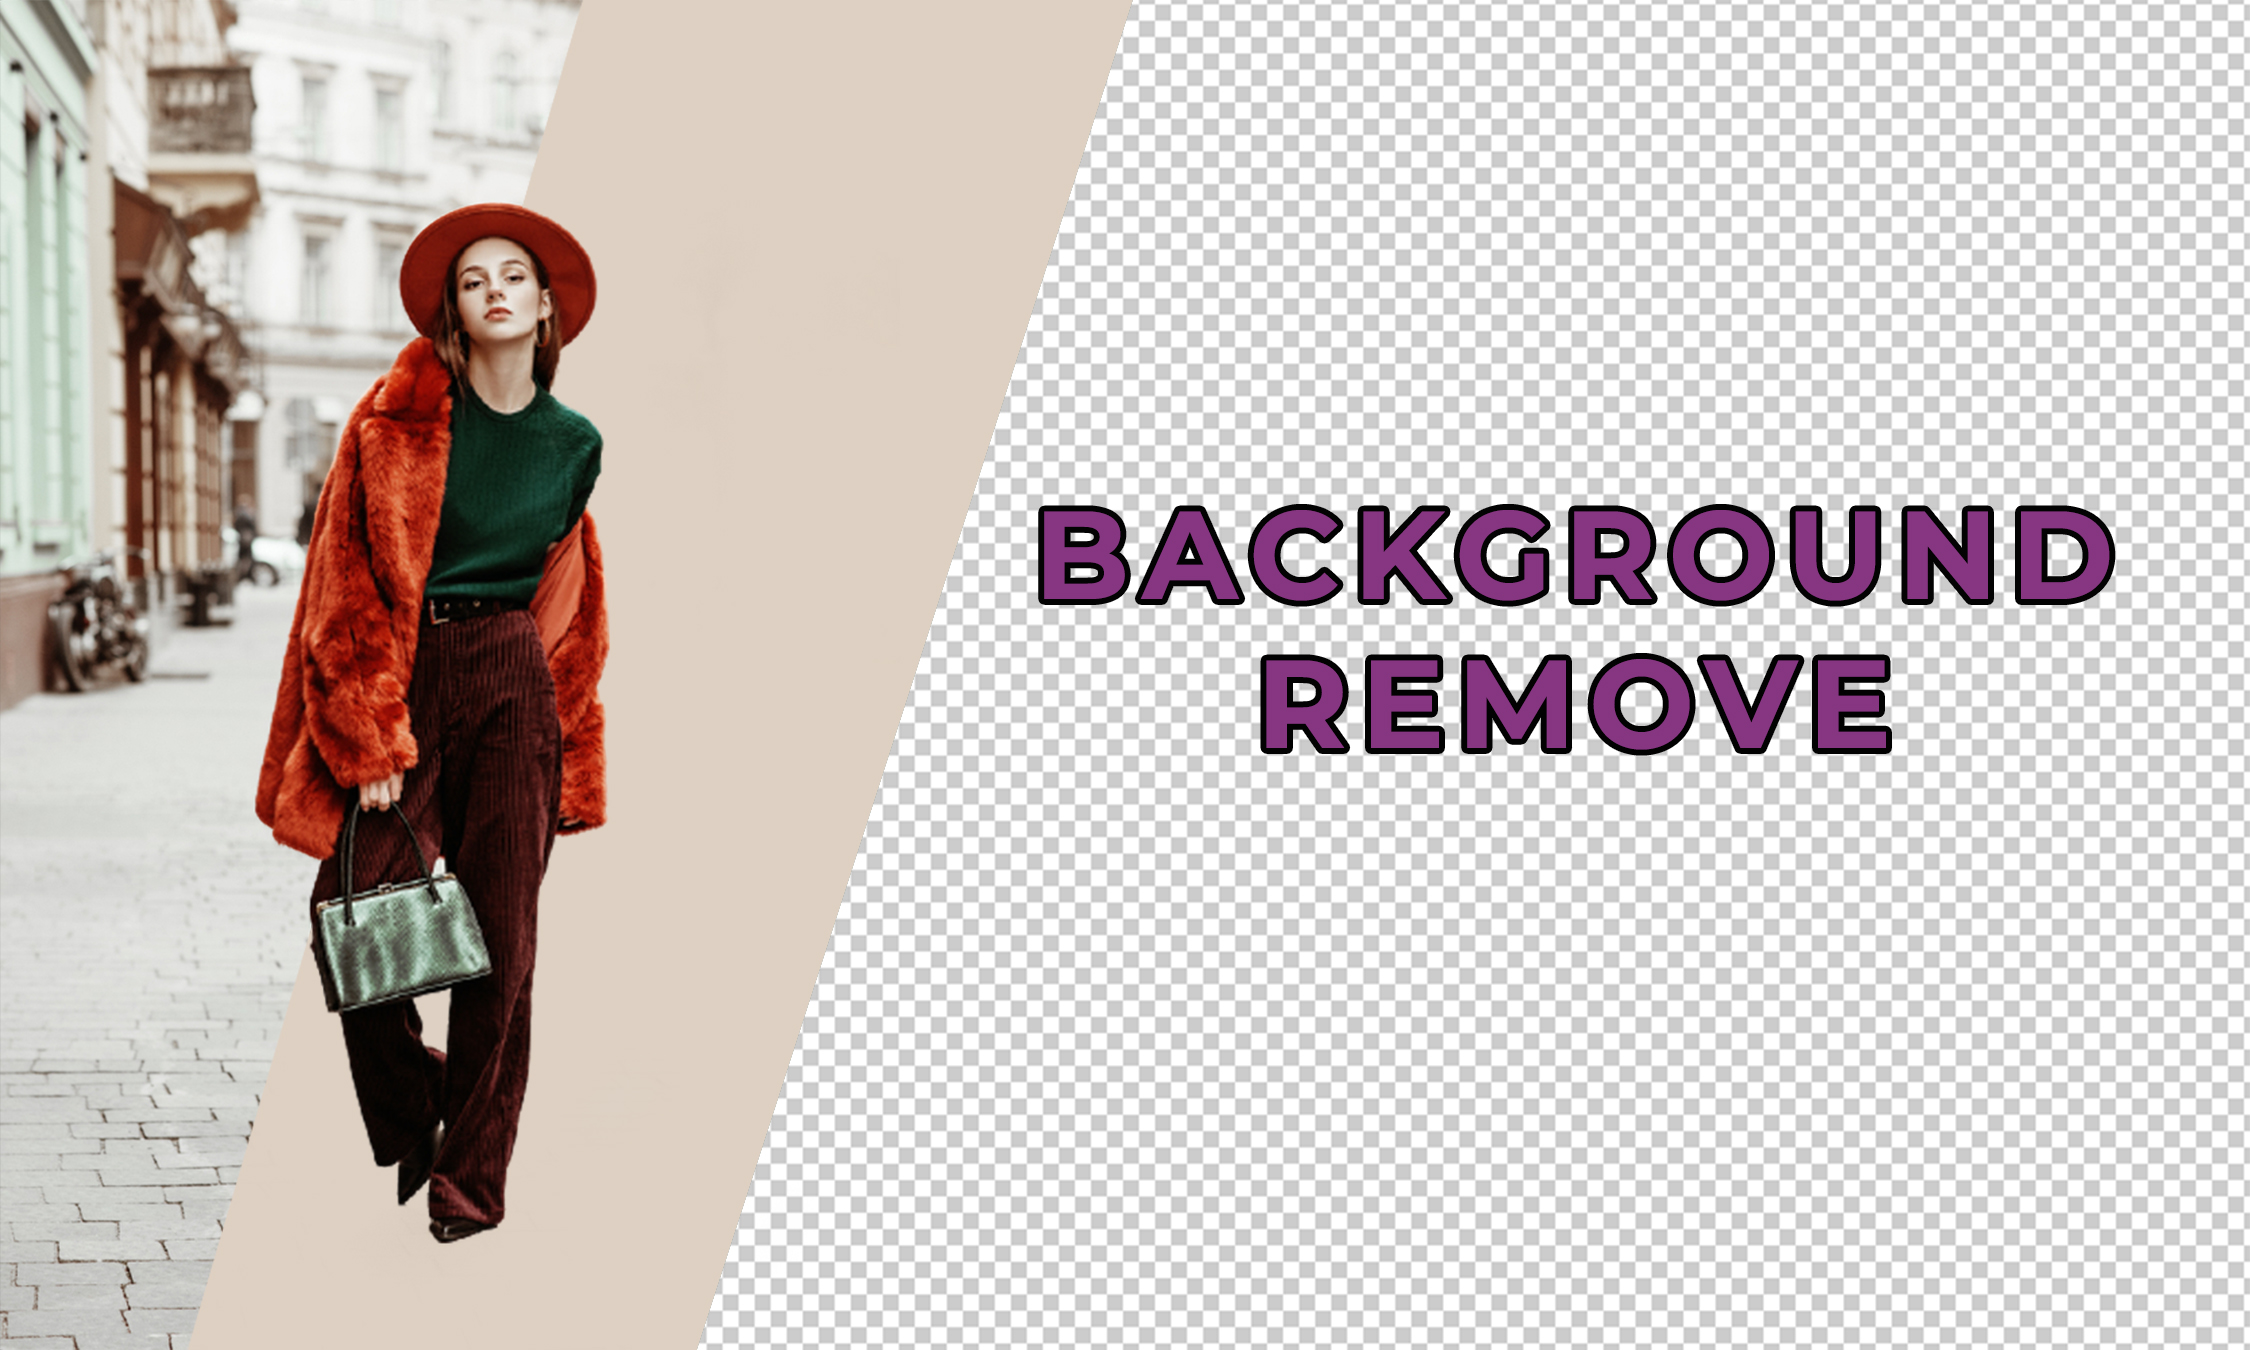 Background Remove,  change and clipping path or anything related